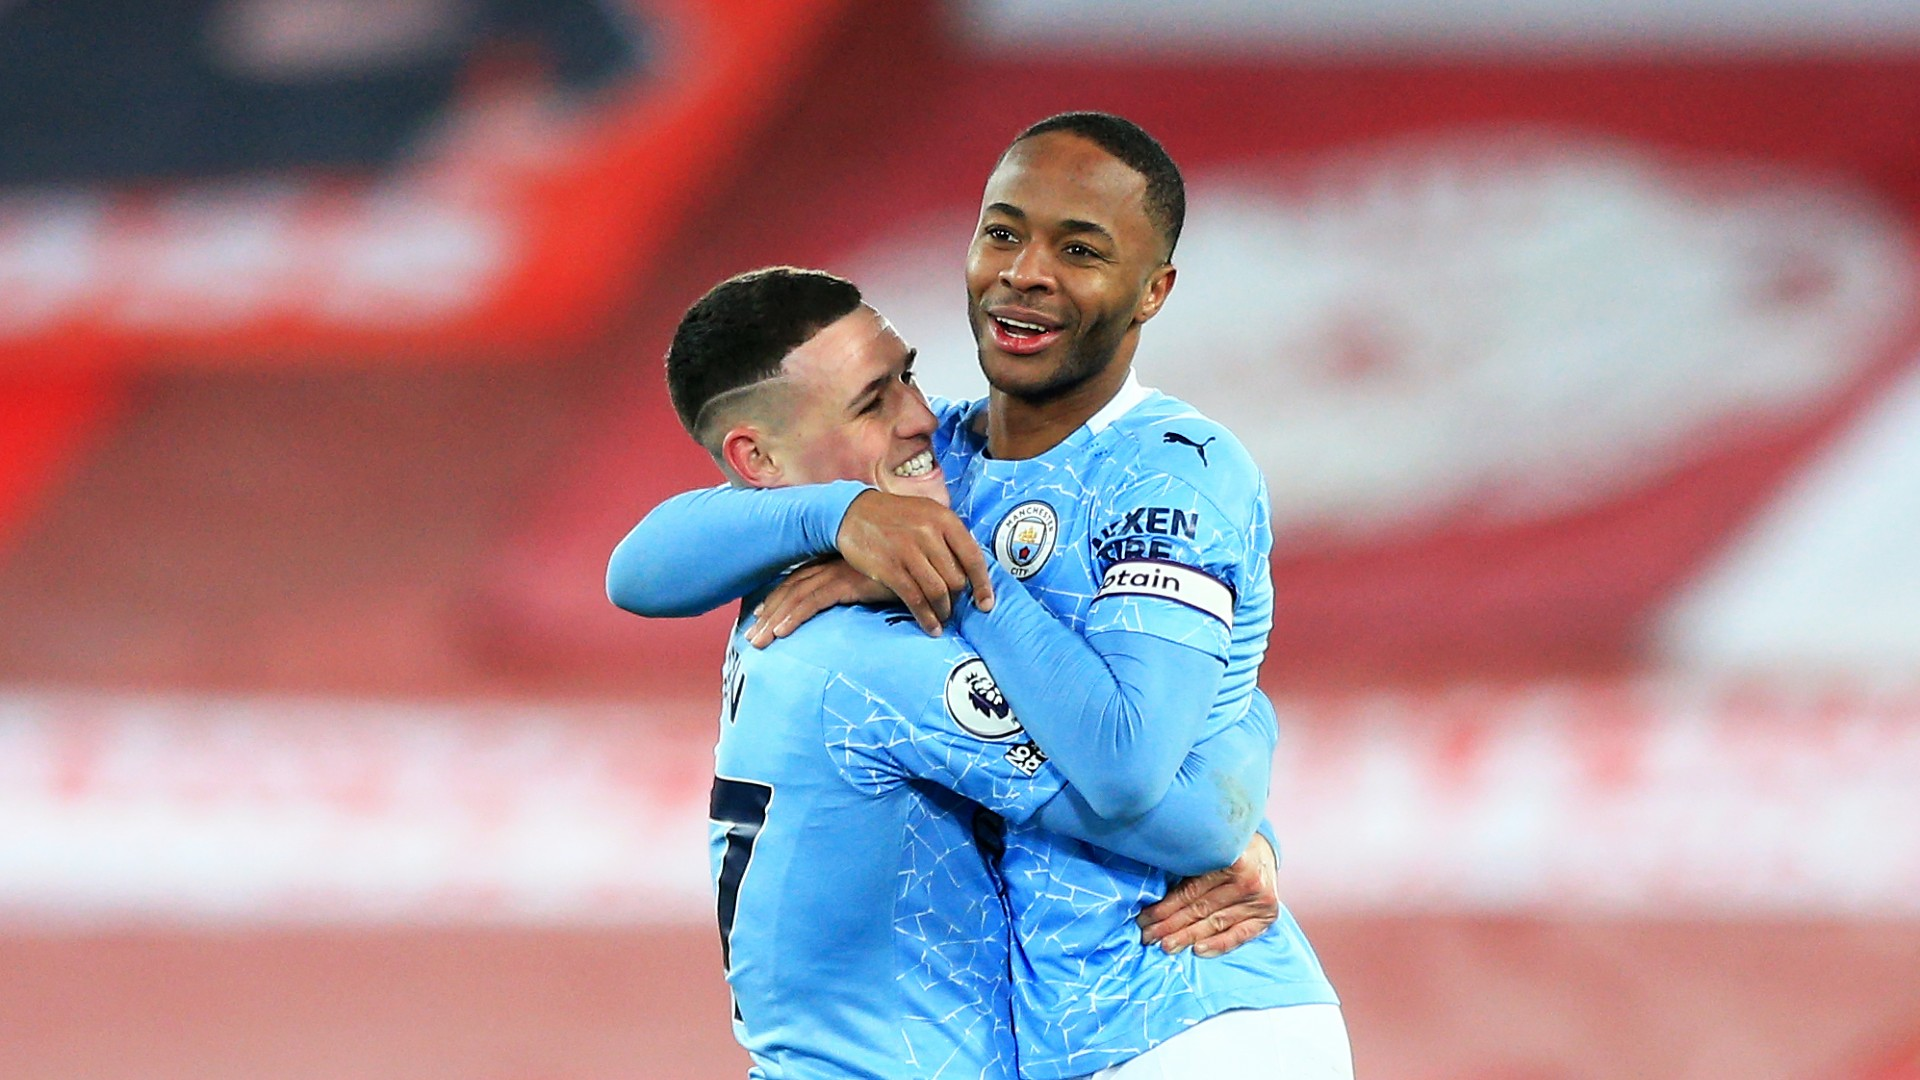 Phil important, Raheem fundamental - Guardiola wants to keep Foden's 'feet on the grass'